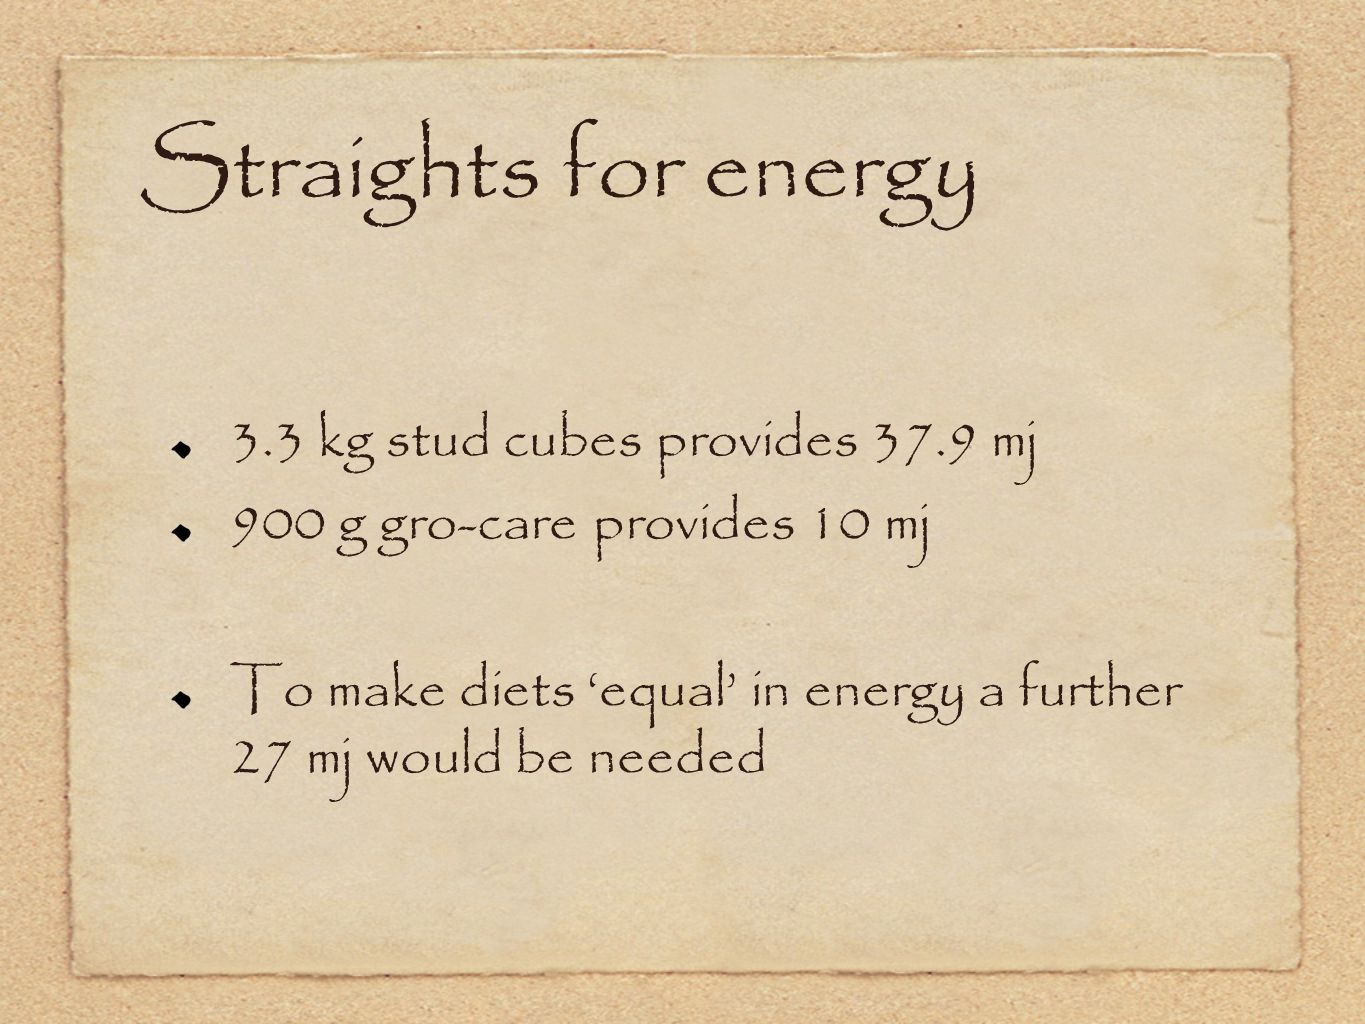 Straights for energy 3.3 kg stud cubes provides 37.9 mj 900 g gro-care provides 10 mj To make diets 'equal' in energy a further 27 mj would be needed